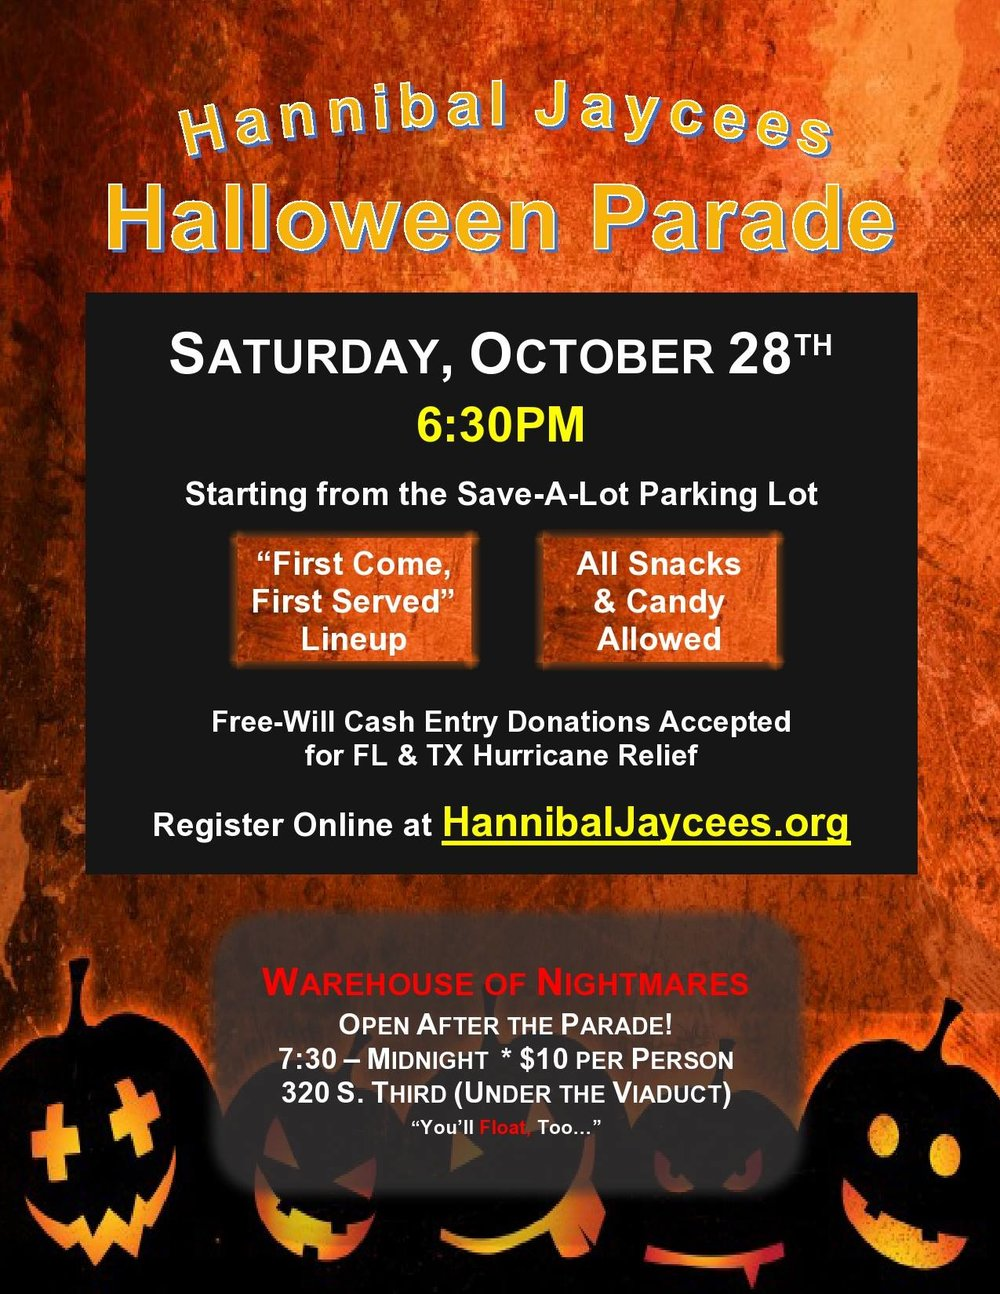 10/28: Jaycees Halloween Parade - Saturday, October 28th at 6:30pm. Not trick or treating, but still candy!